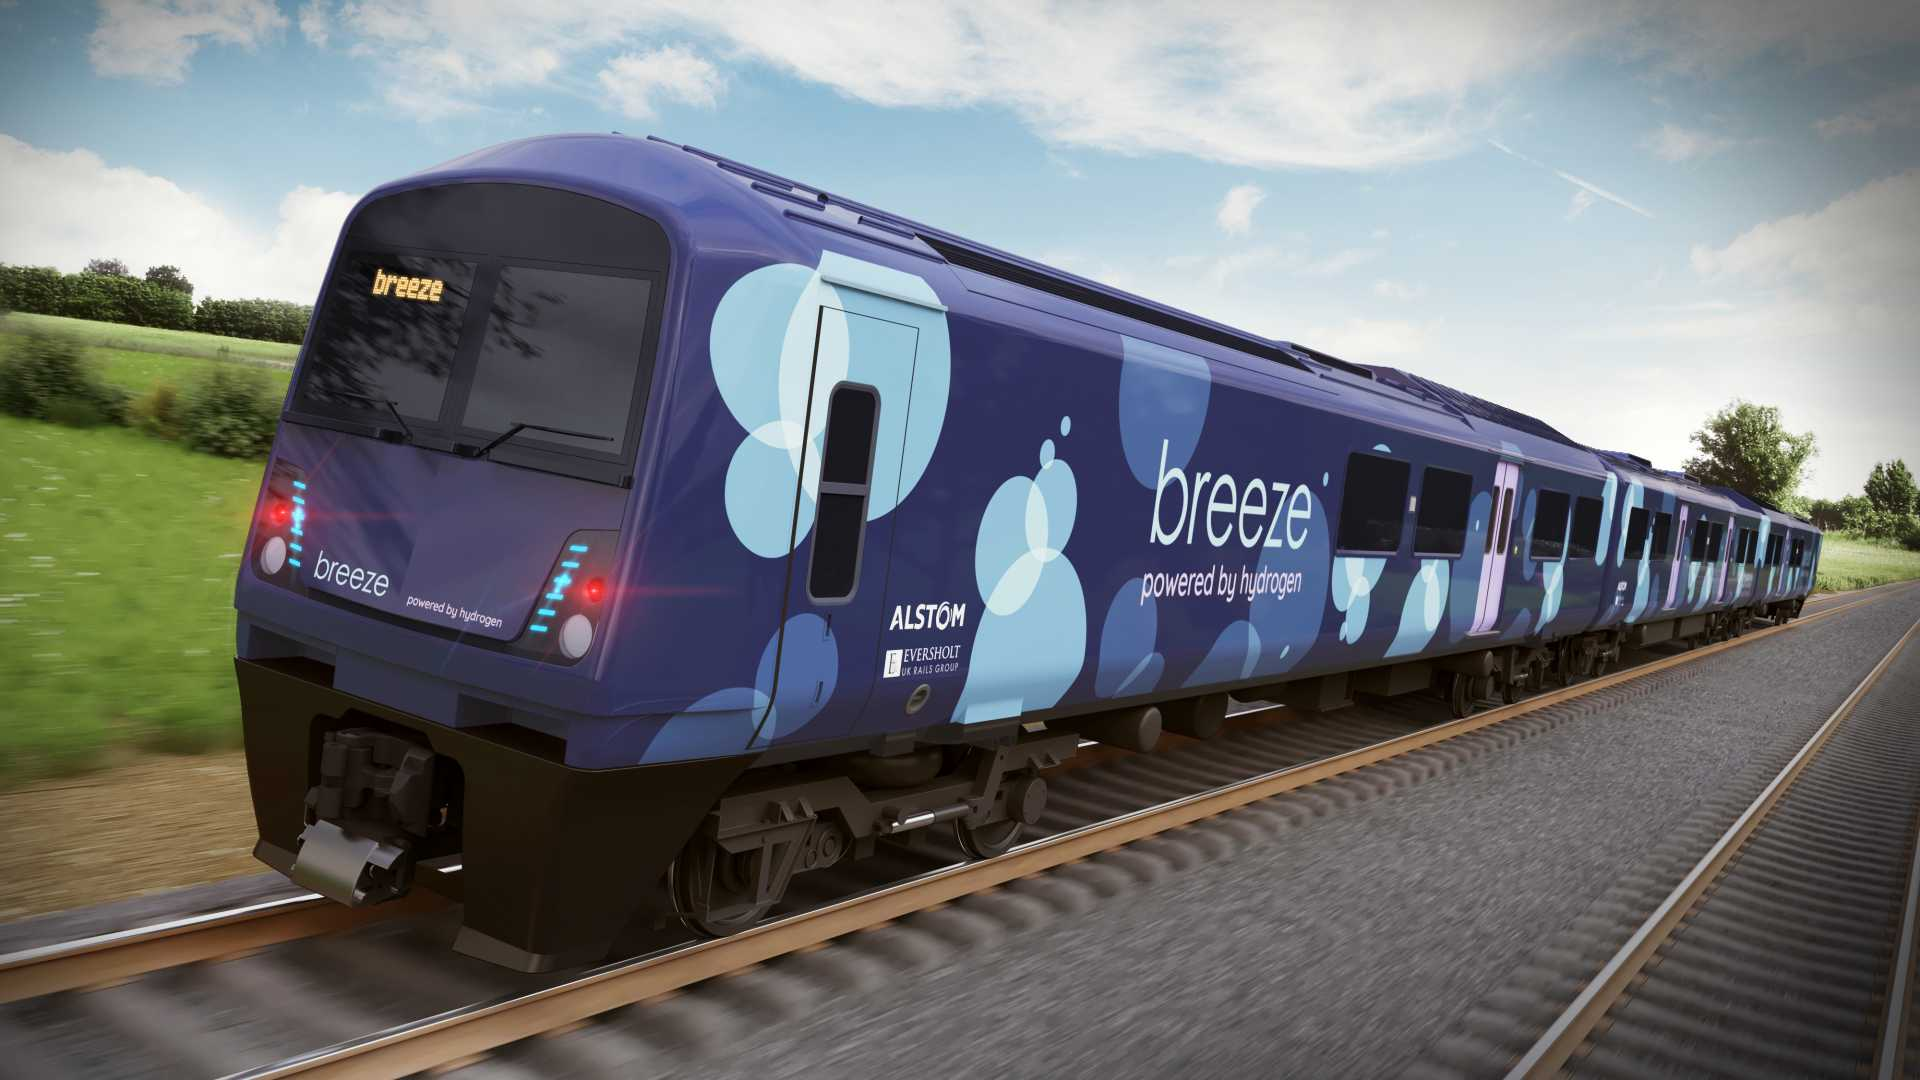 Hydrogen trains are greener, quieter and and cheaper to manage than conventional diesel trains. They also don't require expensive install expensive electrification infrastructure - image courtesy of Alstom.